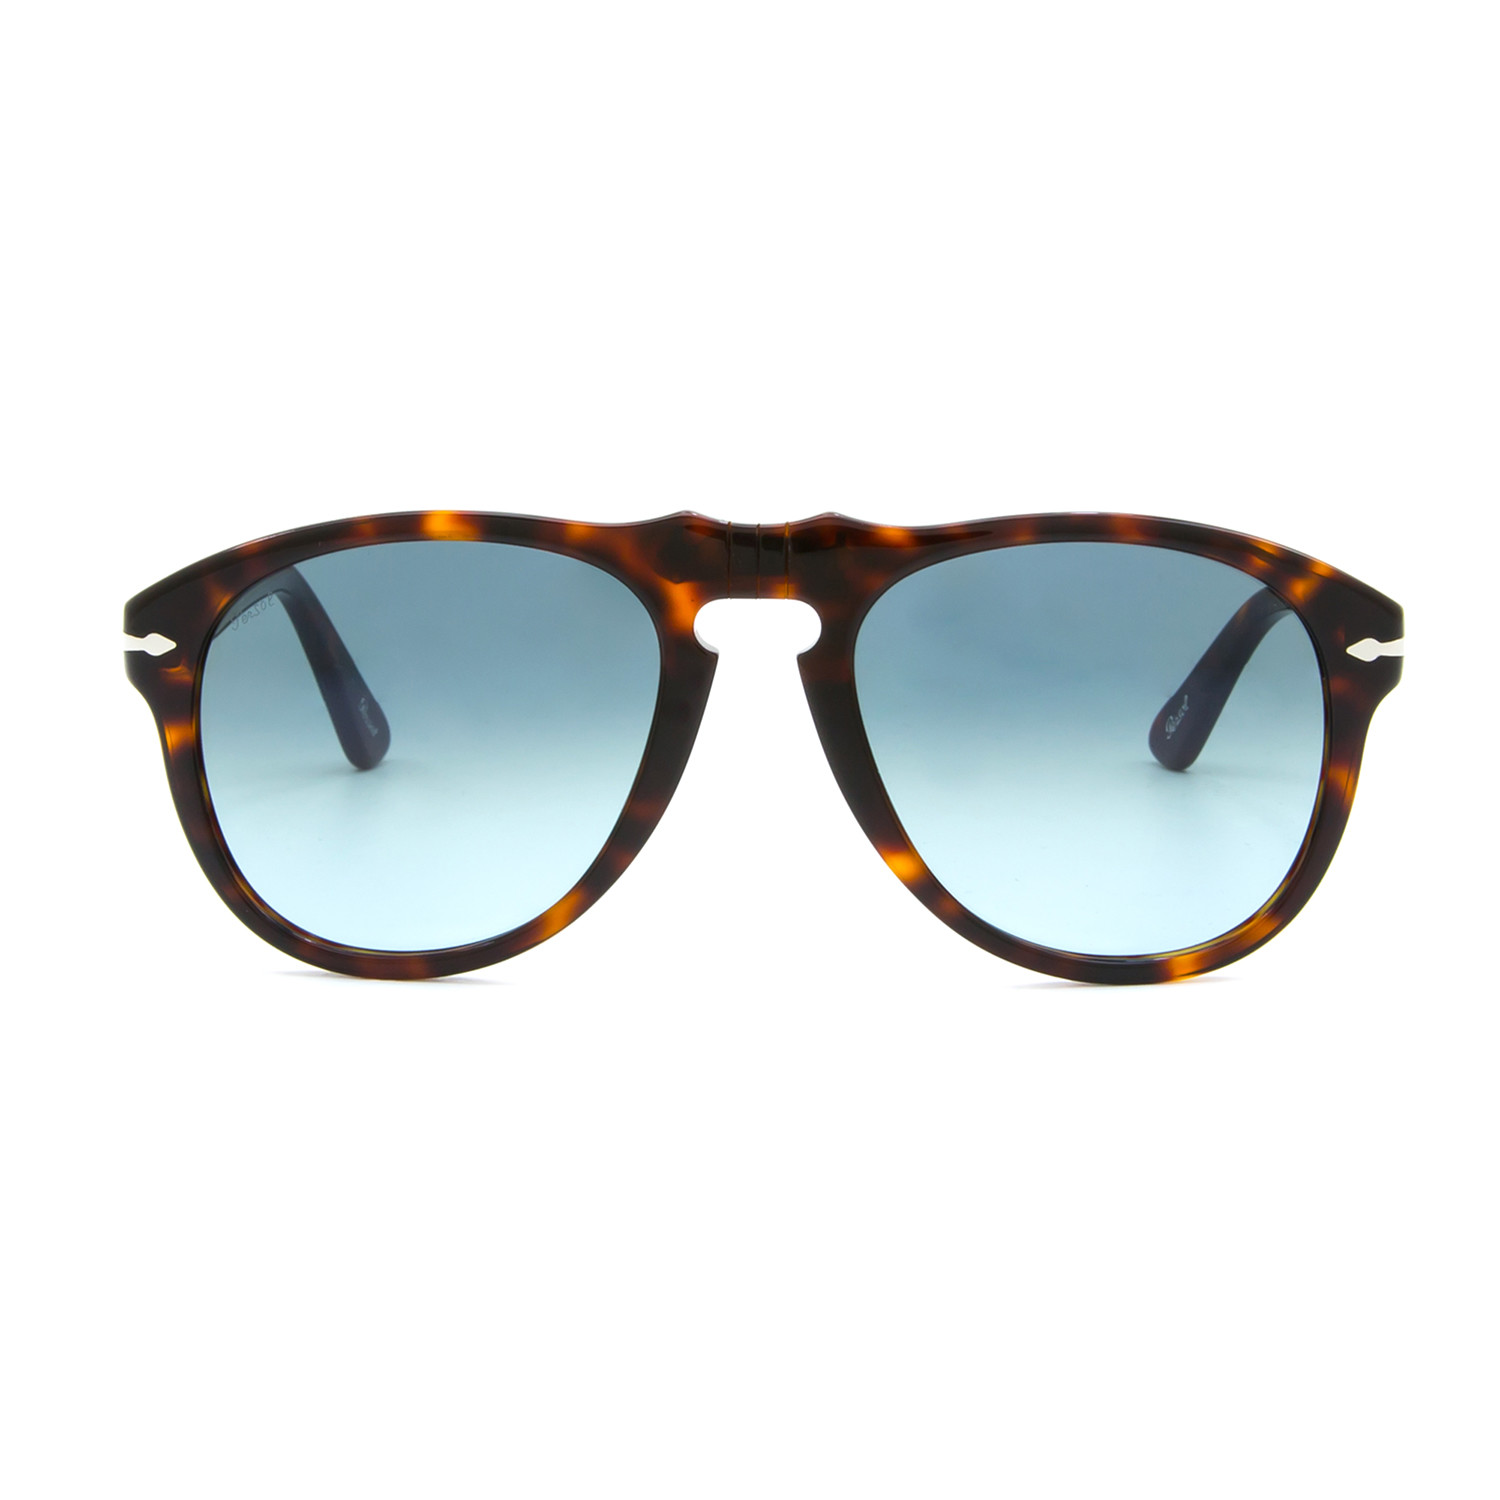 9fee2de6d75 Persol 649 Classic Sunglasses    Dark Havana + Blue Gradient (52mm ...